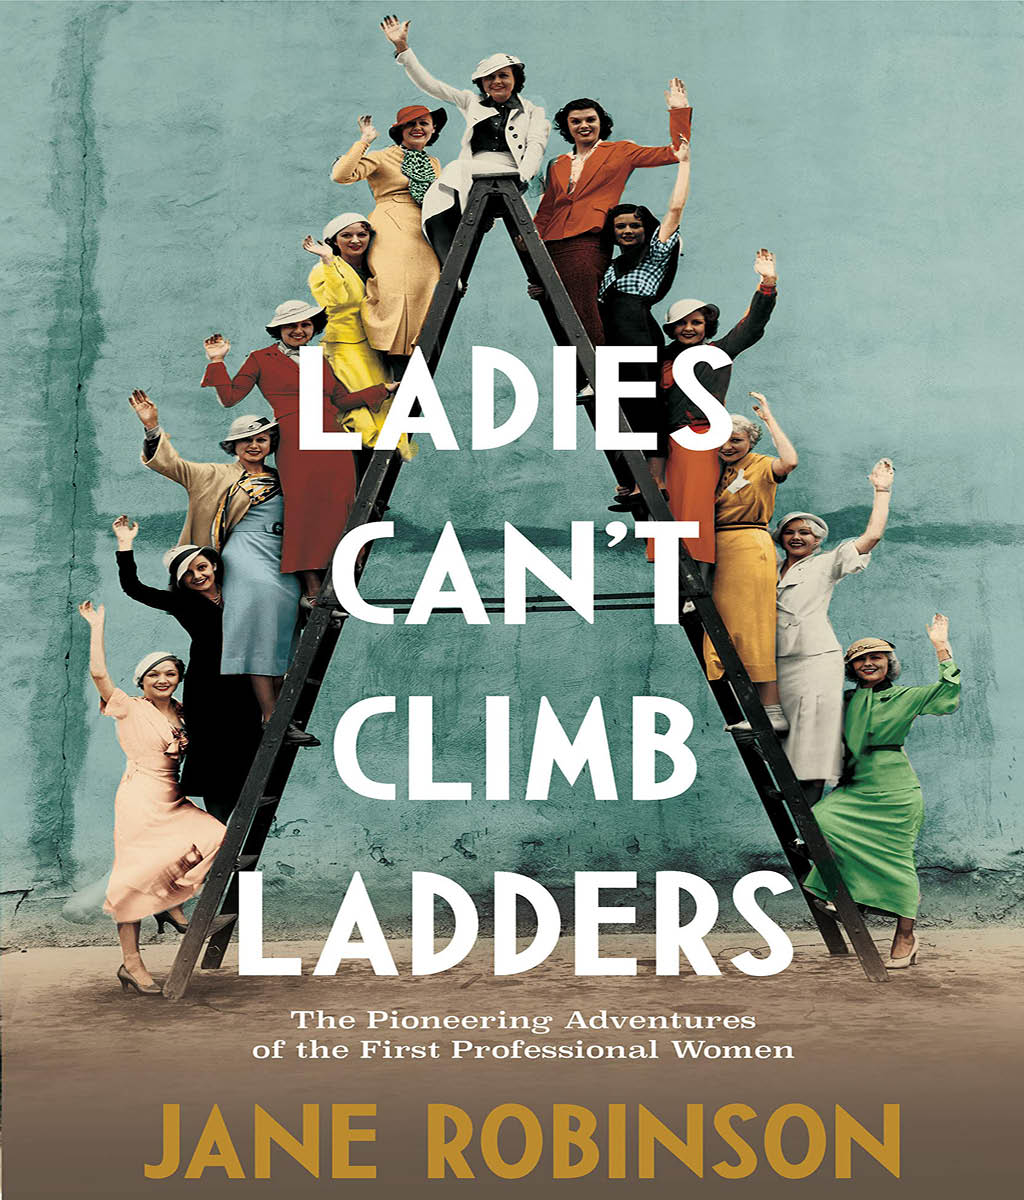 Ladies Can't Climb Ladders Jane Robinson